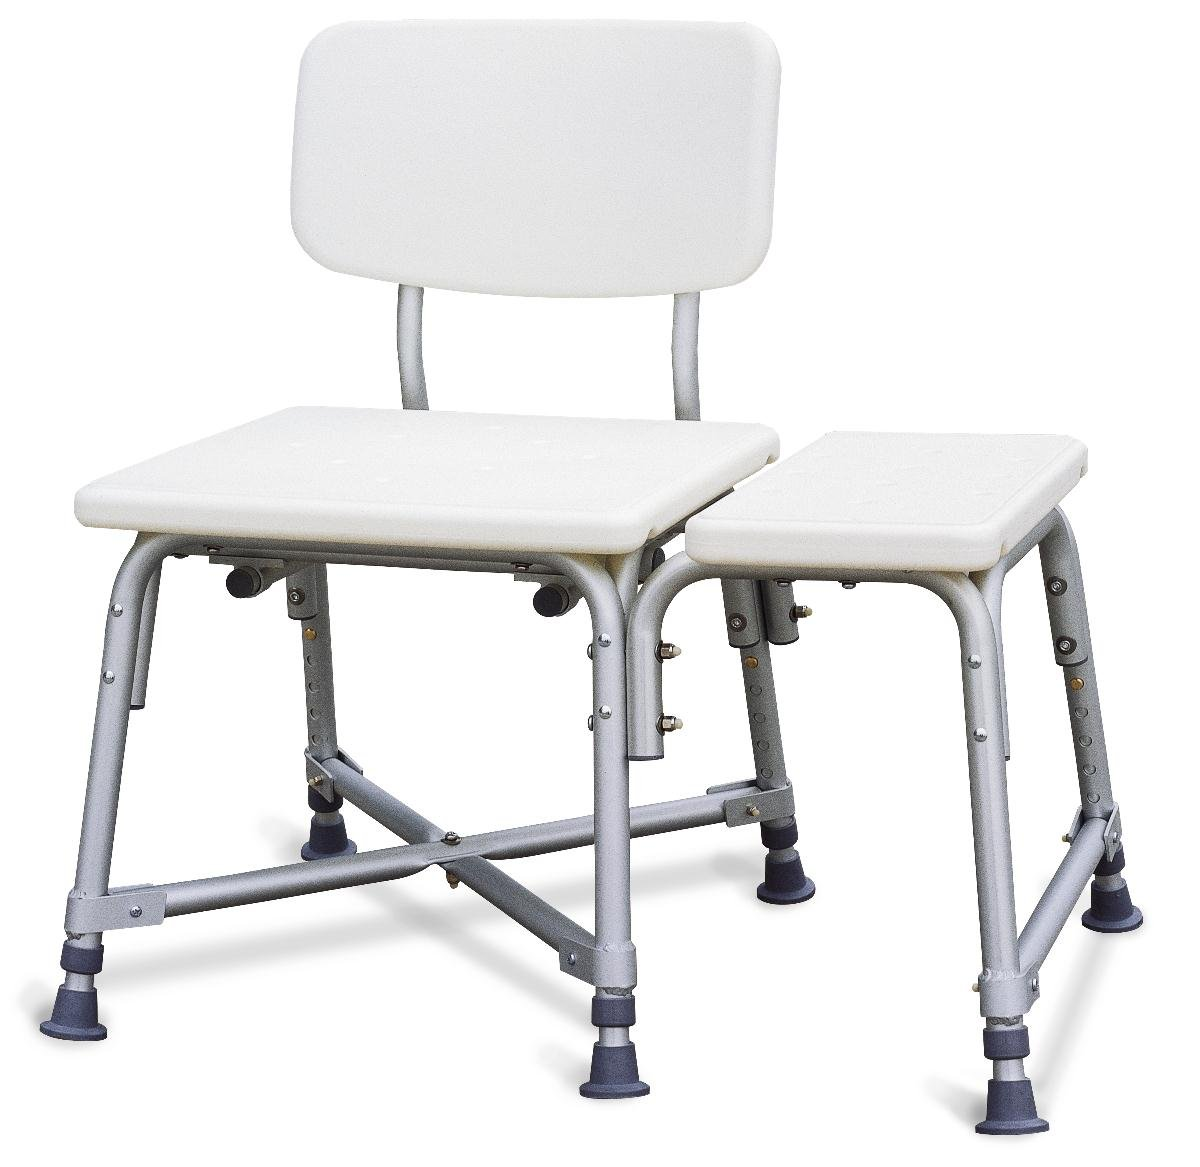 Medline Bariatric Heavy Duty Medical Transfer Bench, with Adjustable Height and 6 Heavy Duty Supporting Legs for Extra Stability by Medline